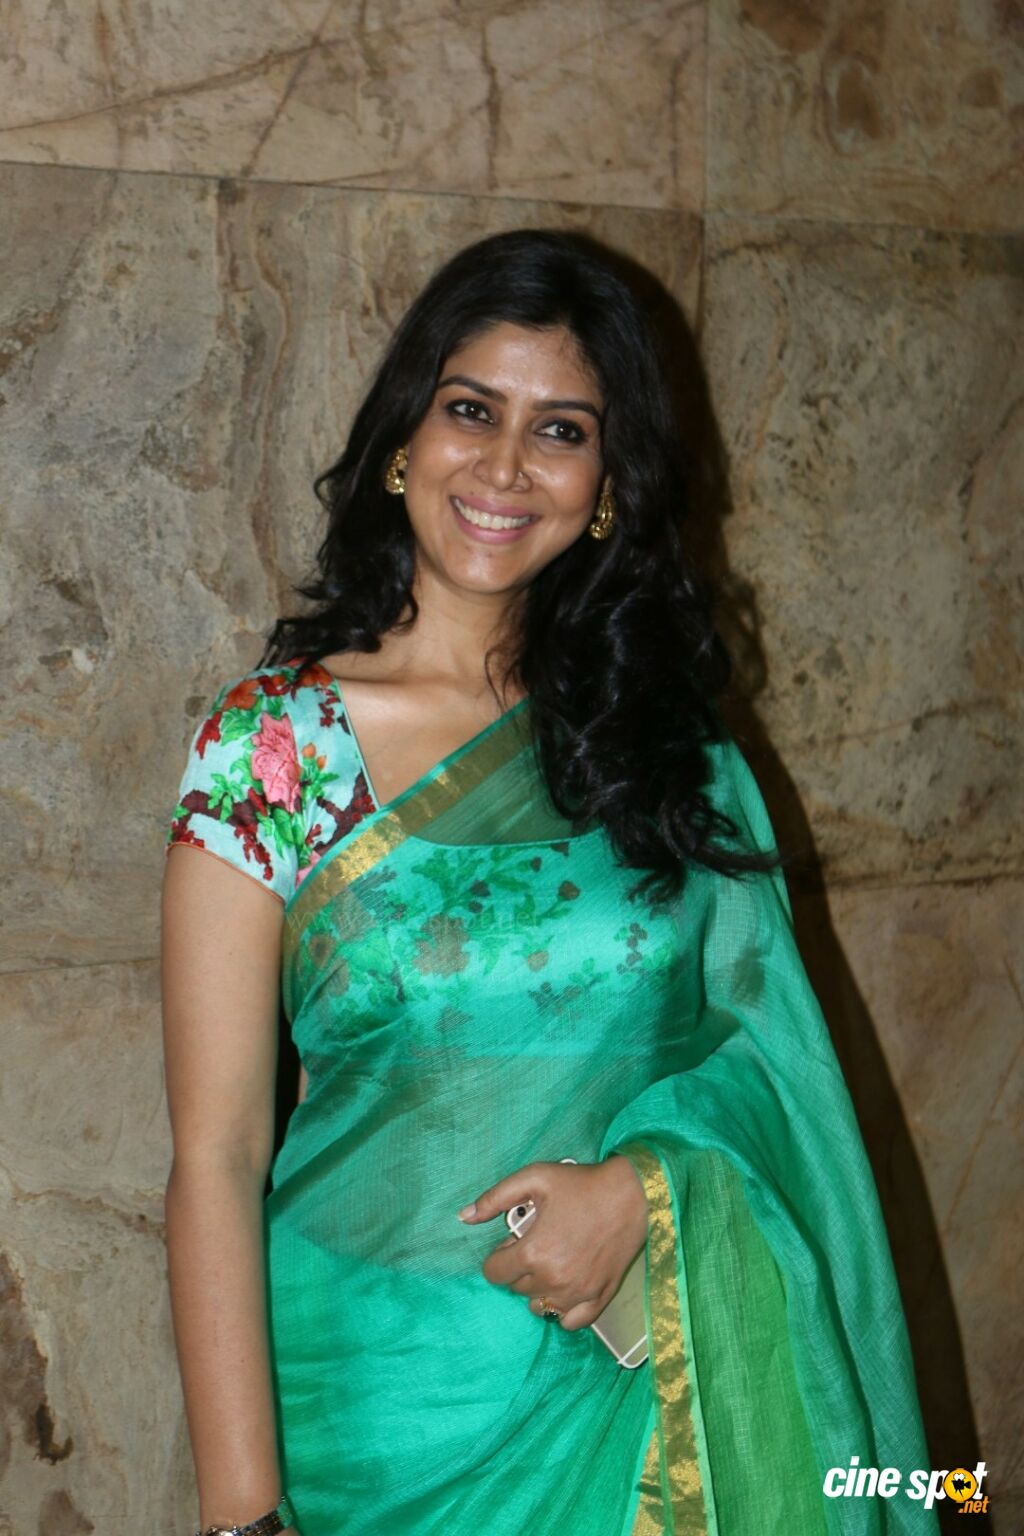 sakshi tanwar facebooksakshi tanwar net worth, sakshi tanwar instagram, sakshi tanwar personal life, sakshi tanwar, sakshi tanwar husband, sakshi tanwar wiki, sakshi tanwar serials, sakshi tanwar age, sakshi tanwar marriage, sakshi tanwar daughter, sakshi tanwar husband name, sakshi tanwar family, sakshi tanwar biography, sakshi tanwar spouse, sakshi tanwar and vishal, sakshi tanwar marriage video, sakshi tanwar twitter, sakshi tanwar married, sakshi tanwar facebook, sakshi tanwar husband photo